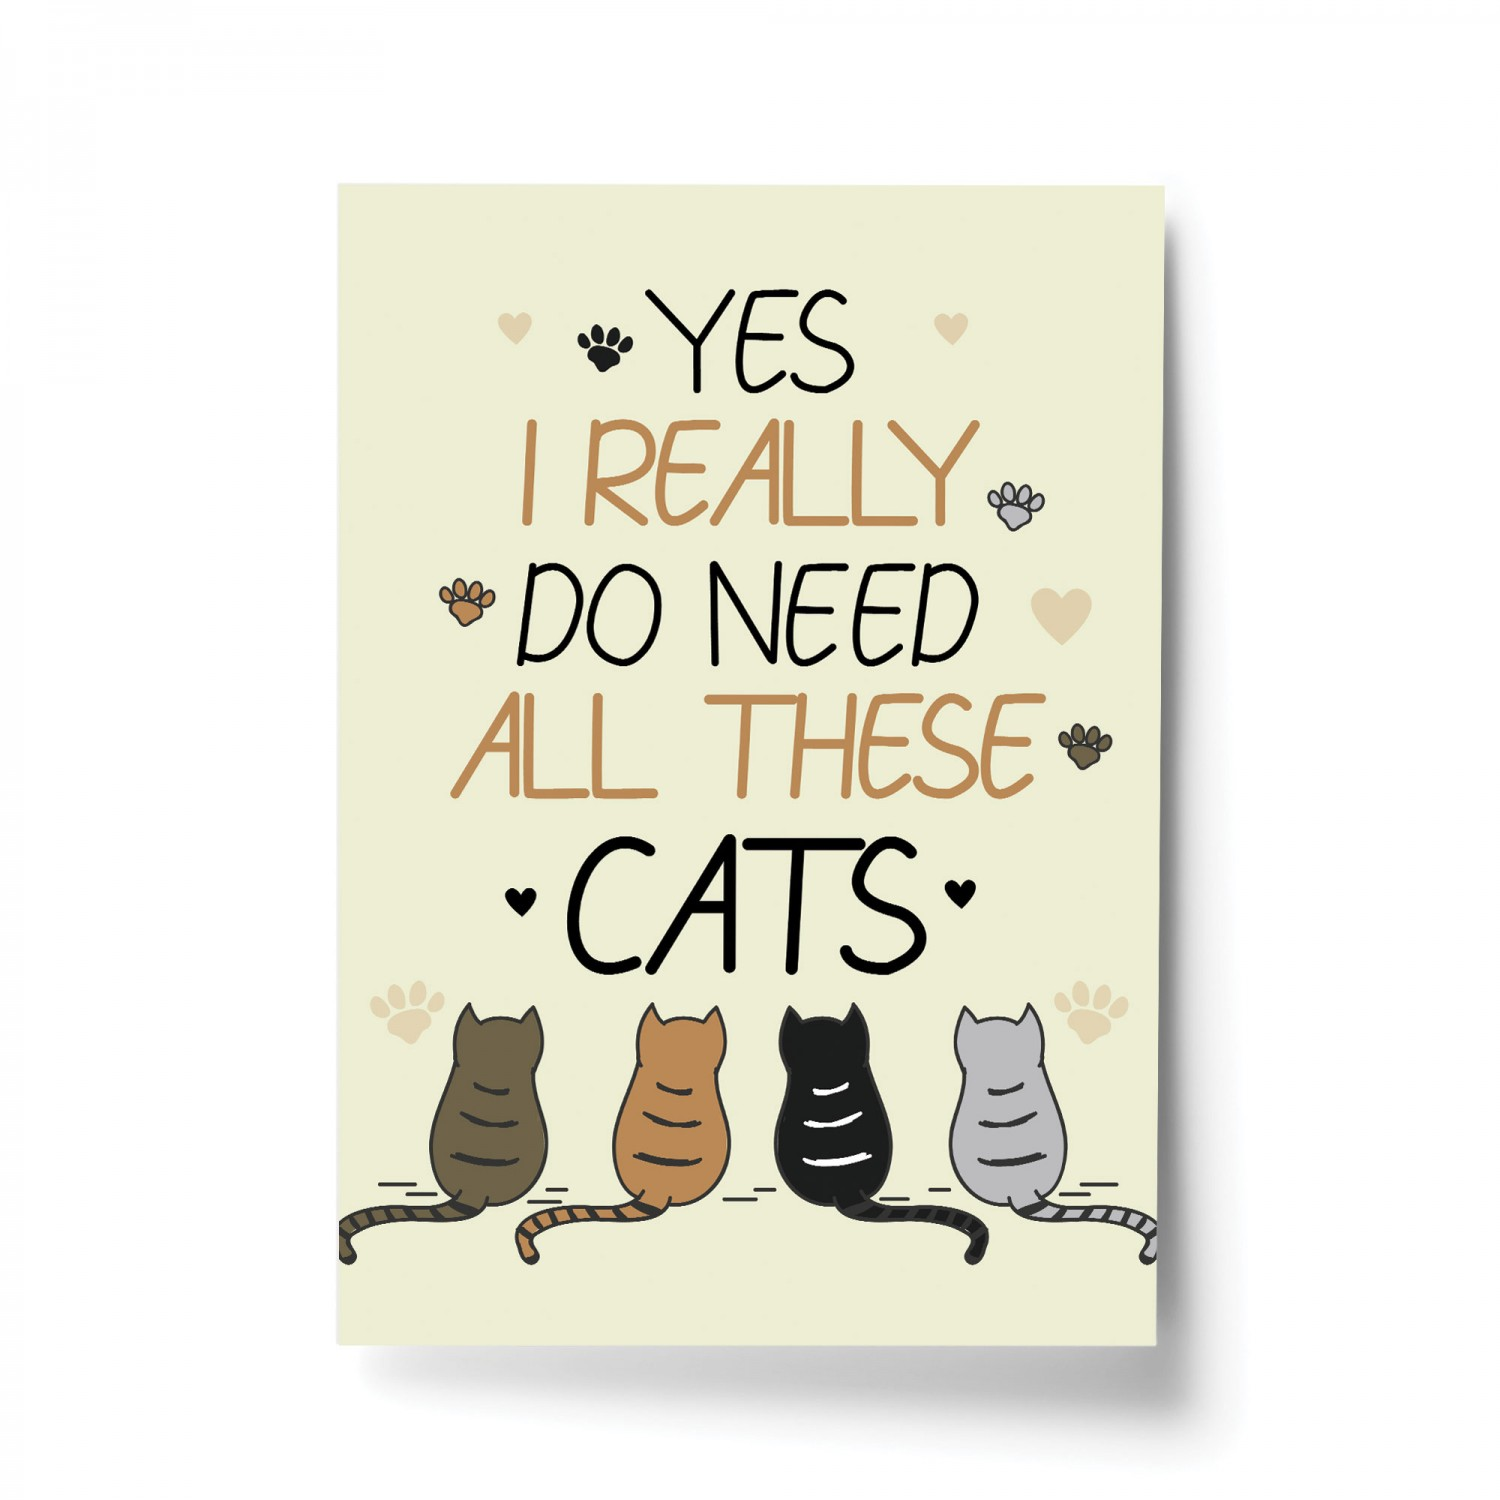 Cat Print Bedroom Wall Art Home Decor Funny Cat Sign Cat Gift